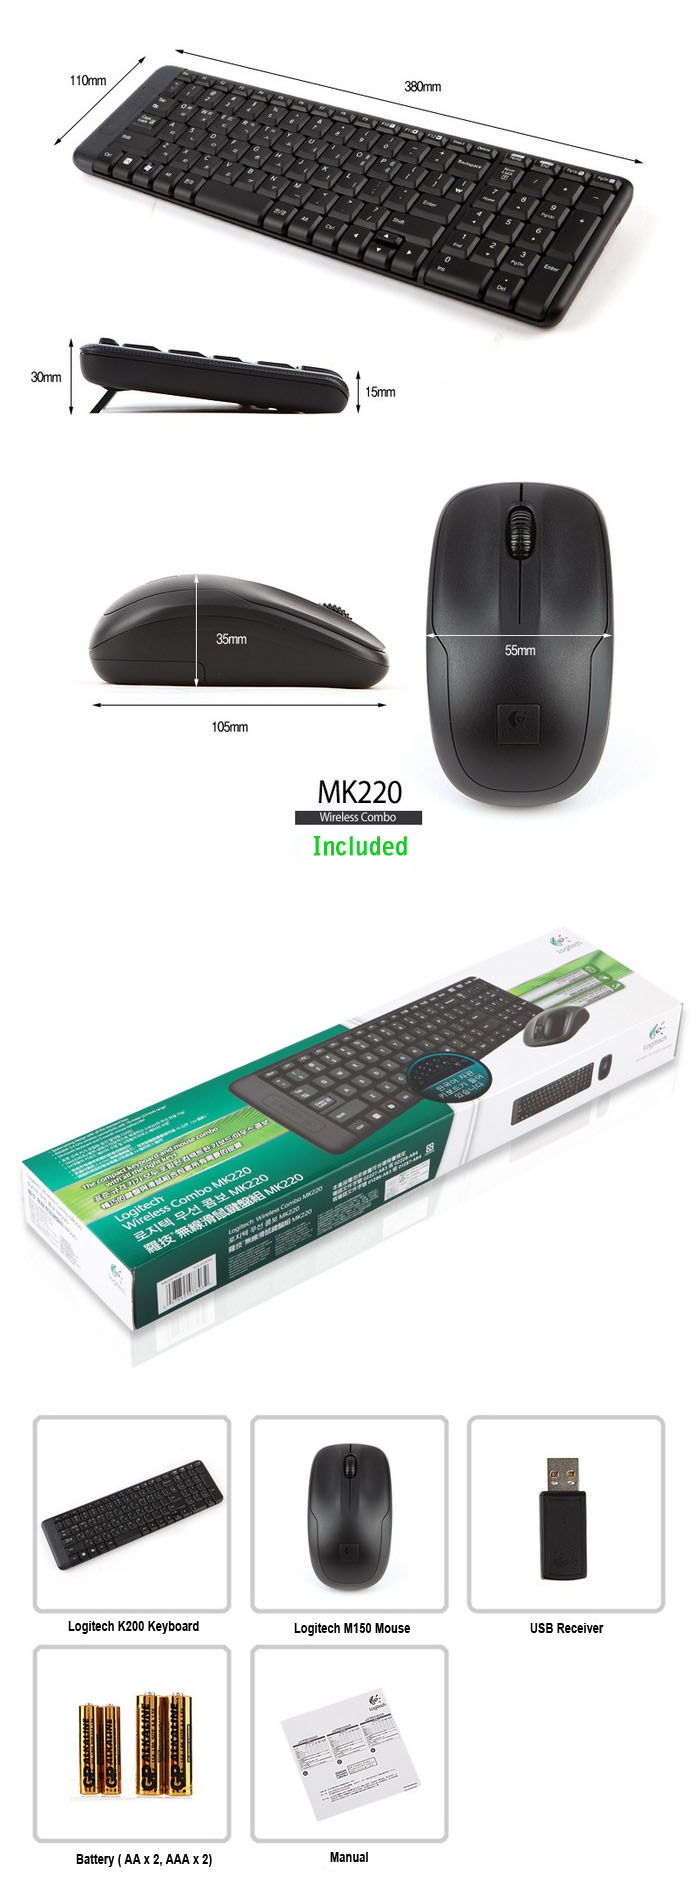 Buy Logitech Combo Mk220 Wireless Keyboard Deals For Only Rp370000 Mouse Original Garansi Resmi